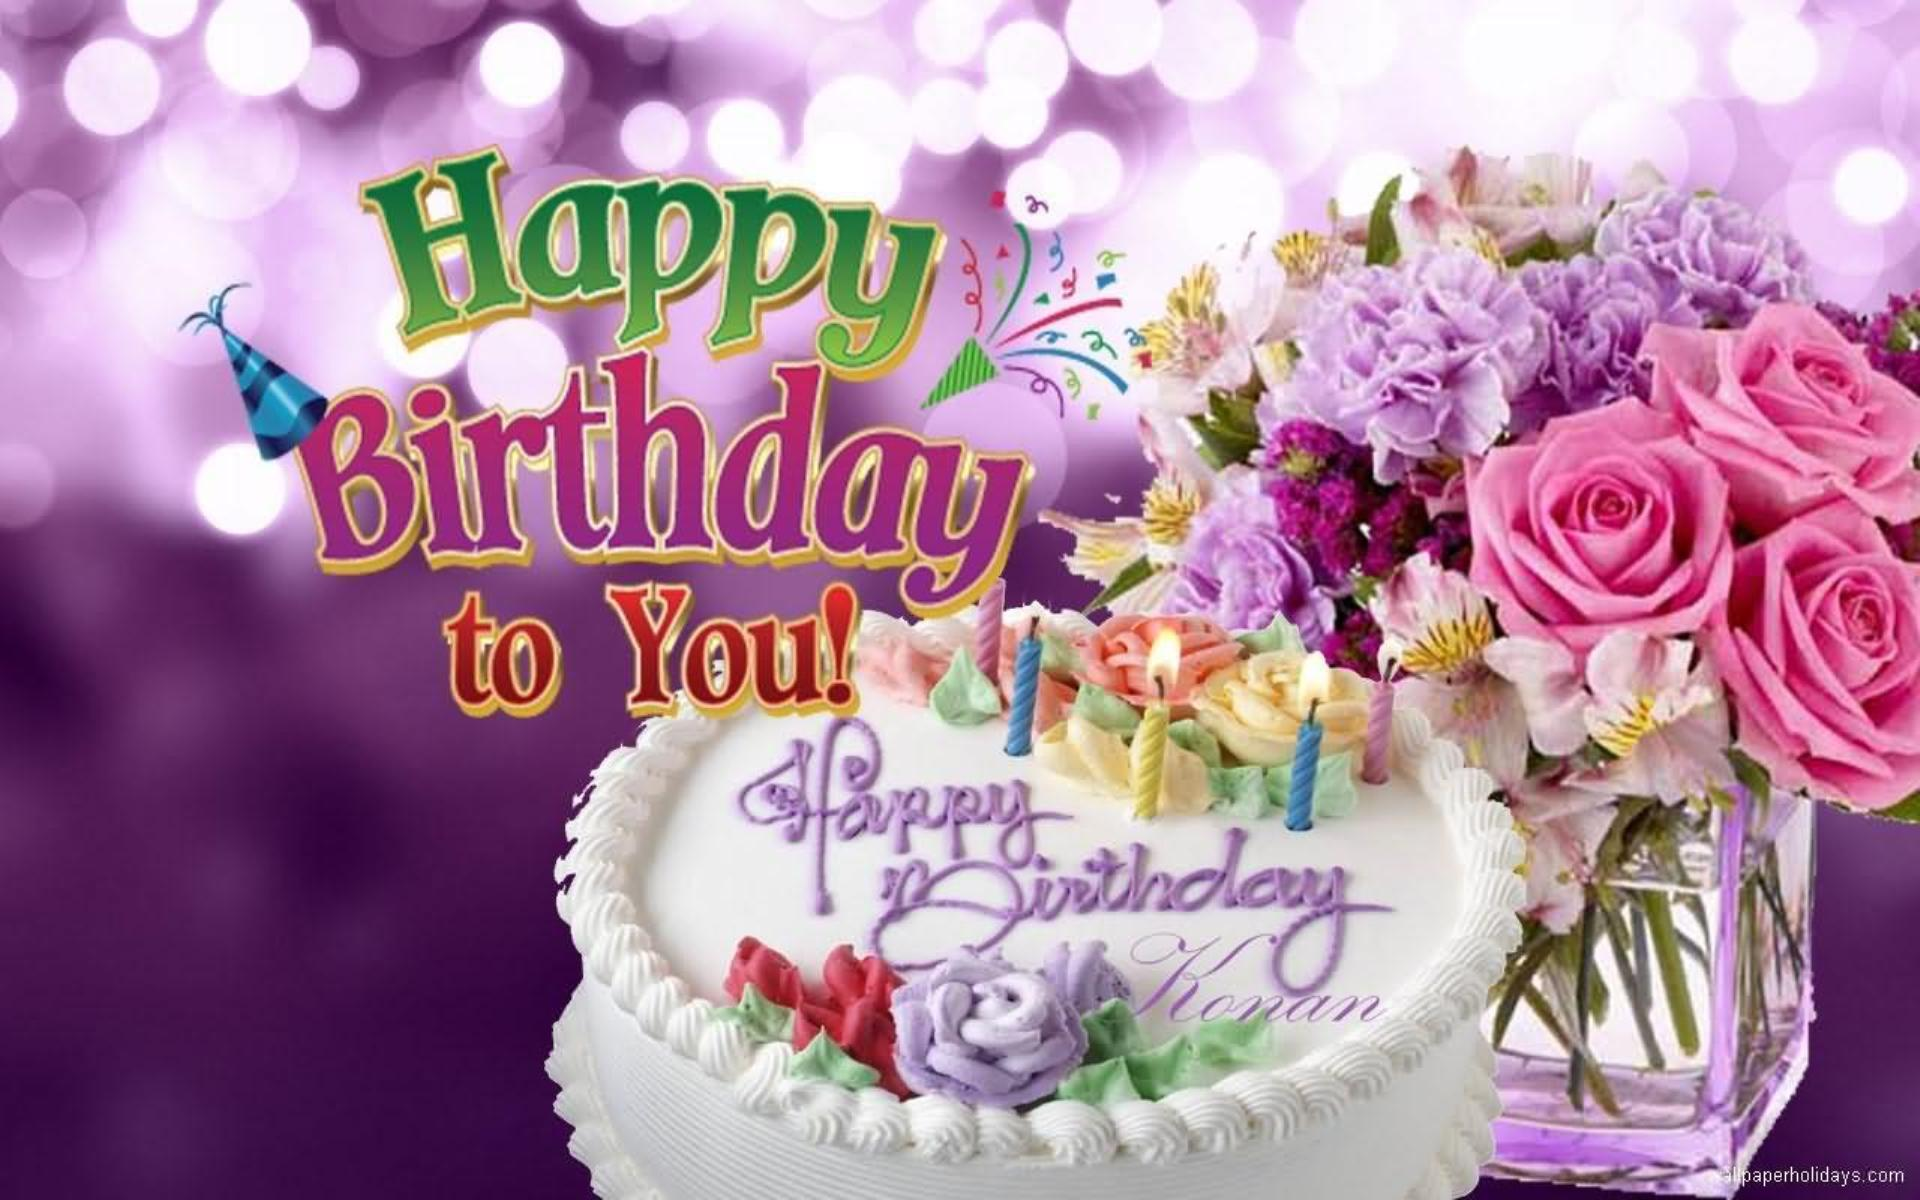 birthday wishes wallpapers free download ; happy-birthday-wallpaper-free-download-5